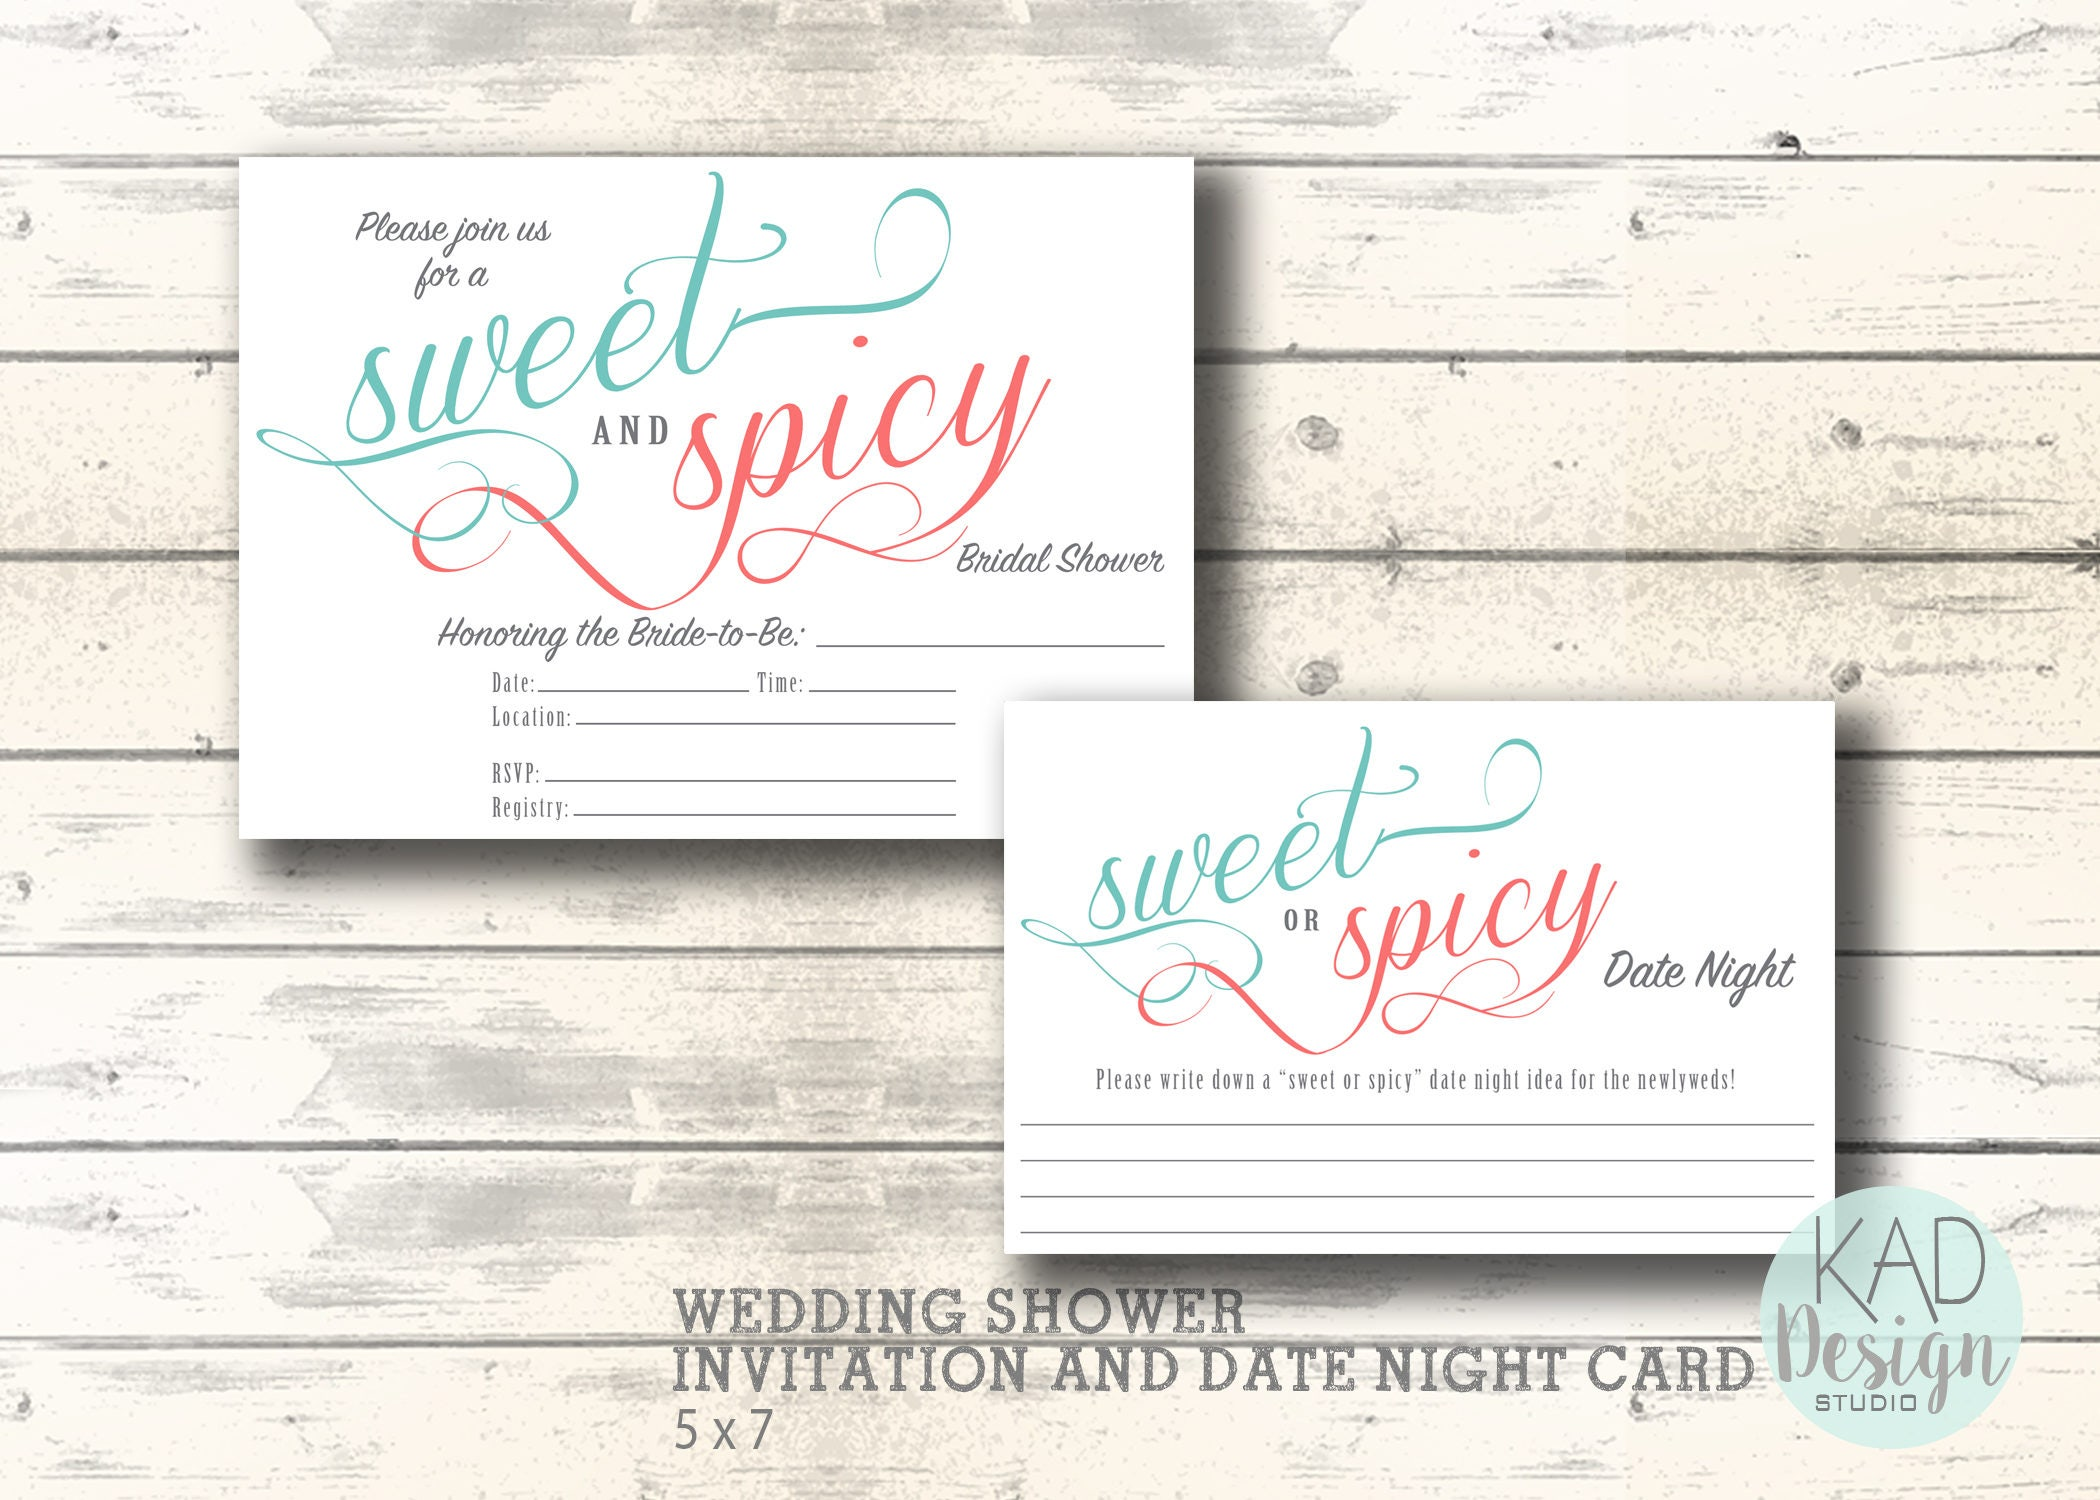 wedding shower invitation and date night card bridal shower invitation sweet and spicy shower invite printable invitation diy wedding